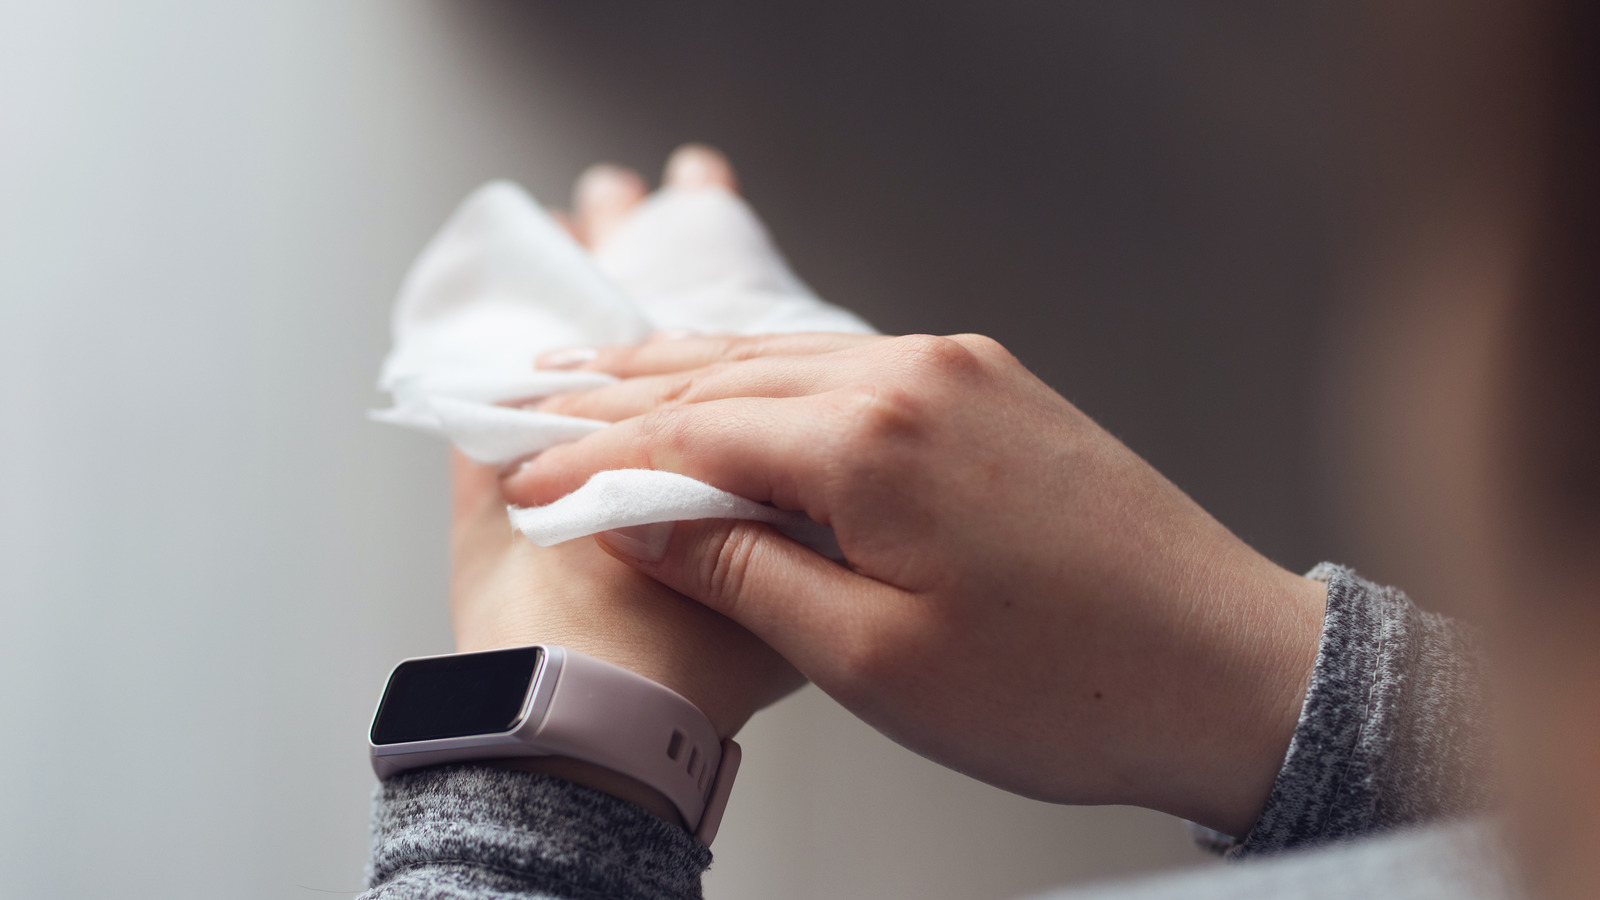 Does Using Disinfectant Wipes On Your Hands Really Work?